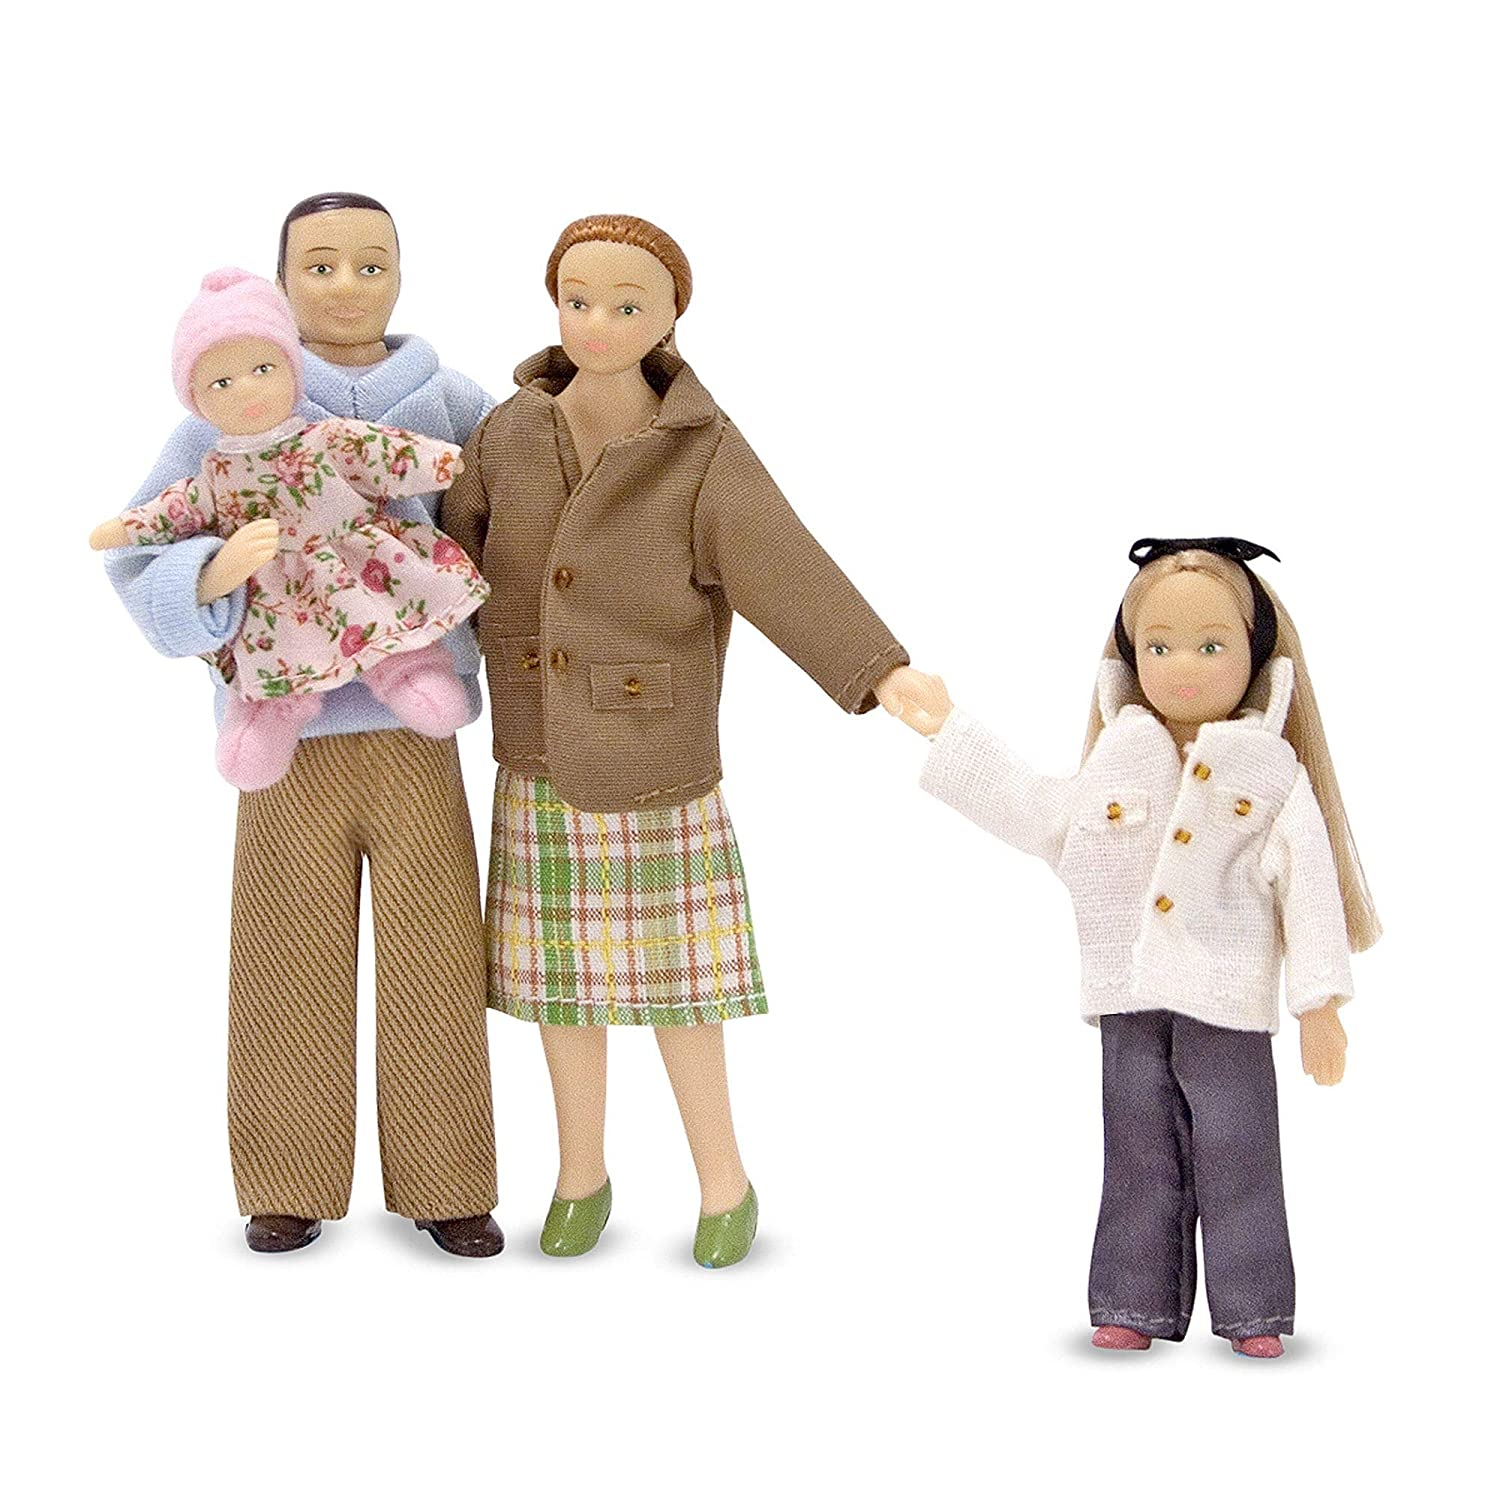 B000NVBEH4 Melissa & Doug Victorian Doll Family, Dollhouse Accessories (4 Poseable Play Figures, 1:12 Scale, Great Gift for Girls and Boys - Best for 6, 7, 8 Year Olds and Up) 81AffUGpFhL